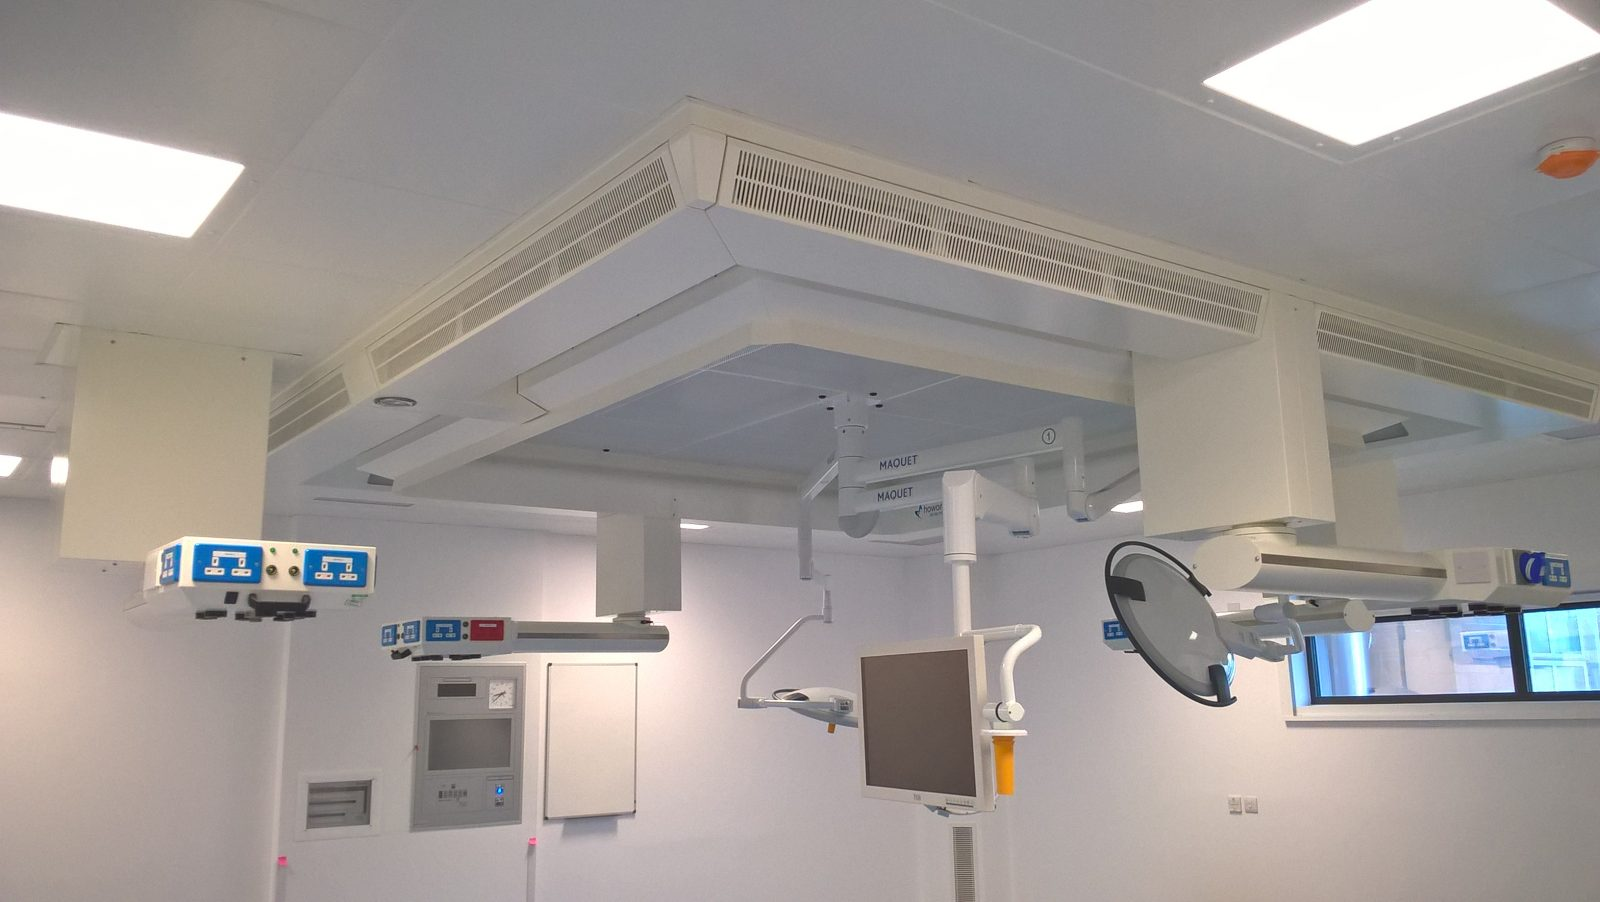 Operating Theatres Mechanical and Electrical engineering services and infrastructure